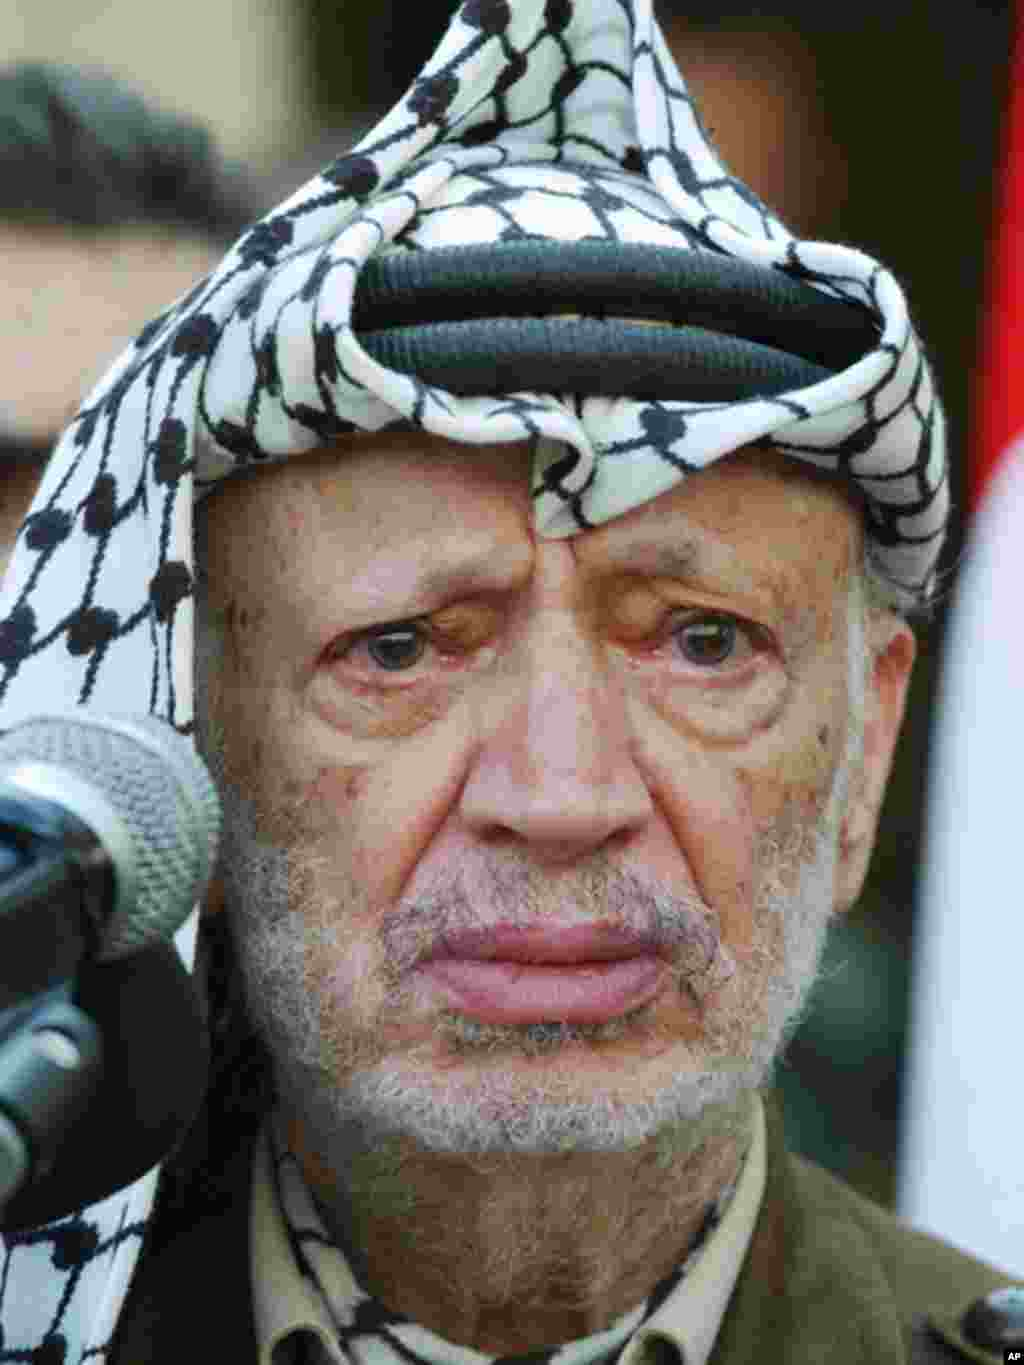 Palestinian leader Yasser Arafat, the founder of the Fatah movement, died in November 2004. (AP)